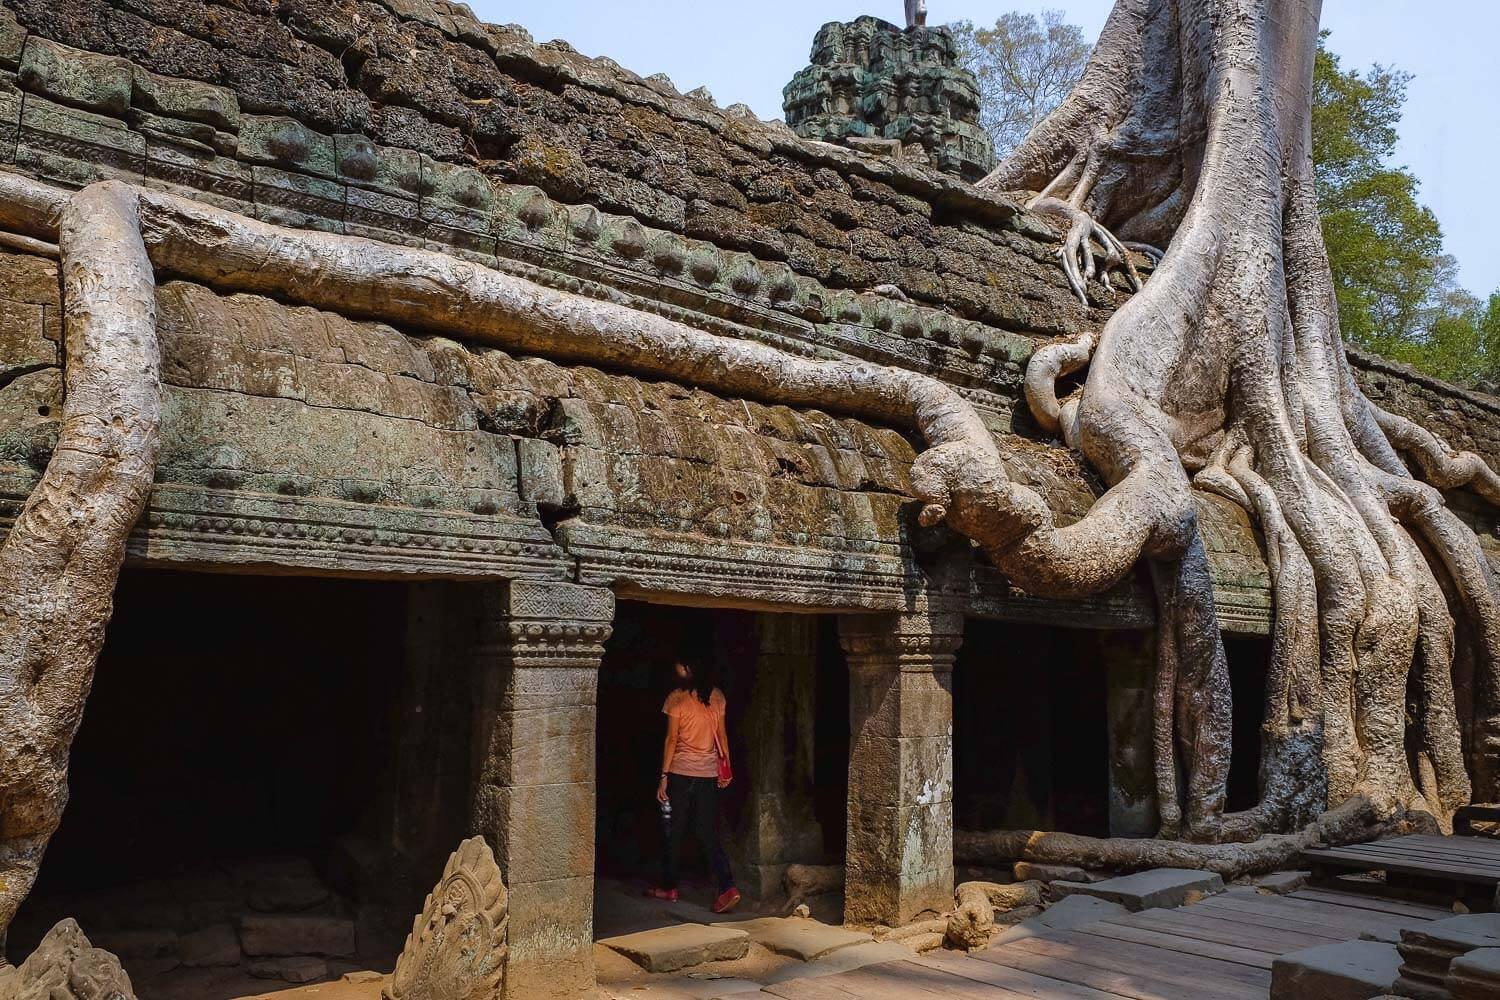 The roots of large trees grow out of Ta Prohm.     #siemreap #taprohm #travelguide #angkorwat #siemreapitinerary #cambodia #travelphotography #landscapephotography #fujifilm #siemreapprivatetour